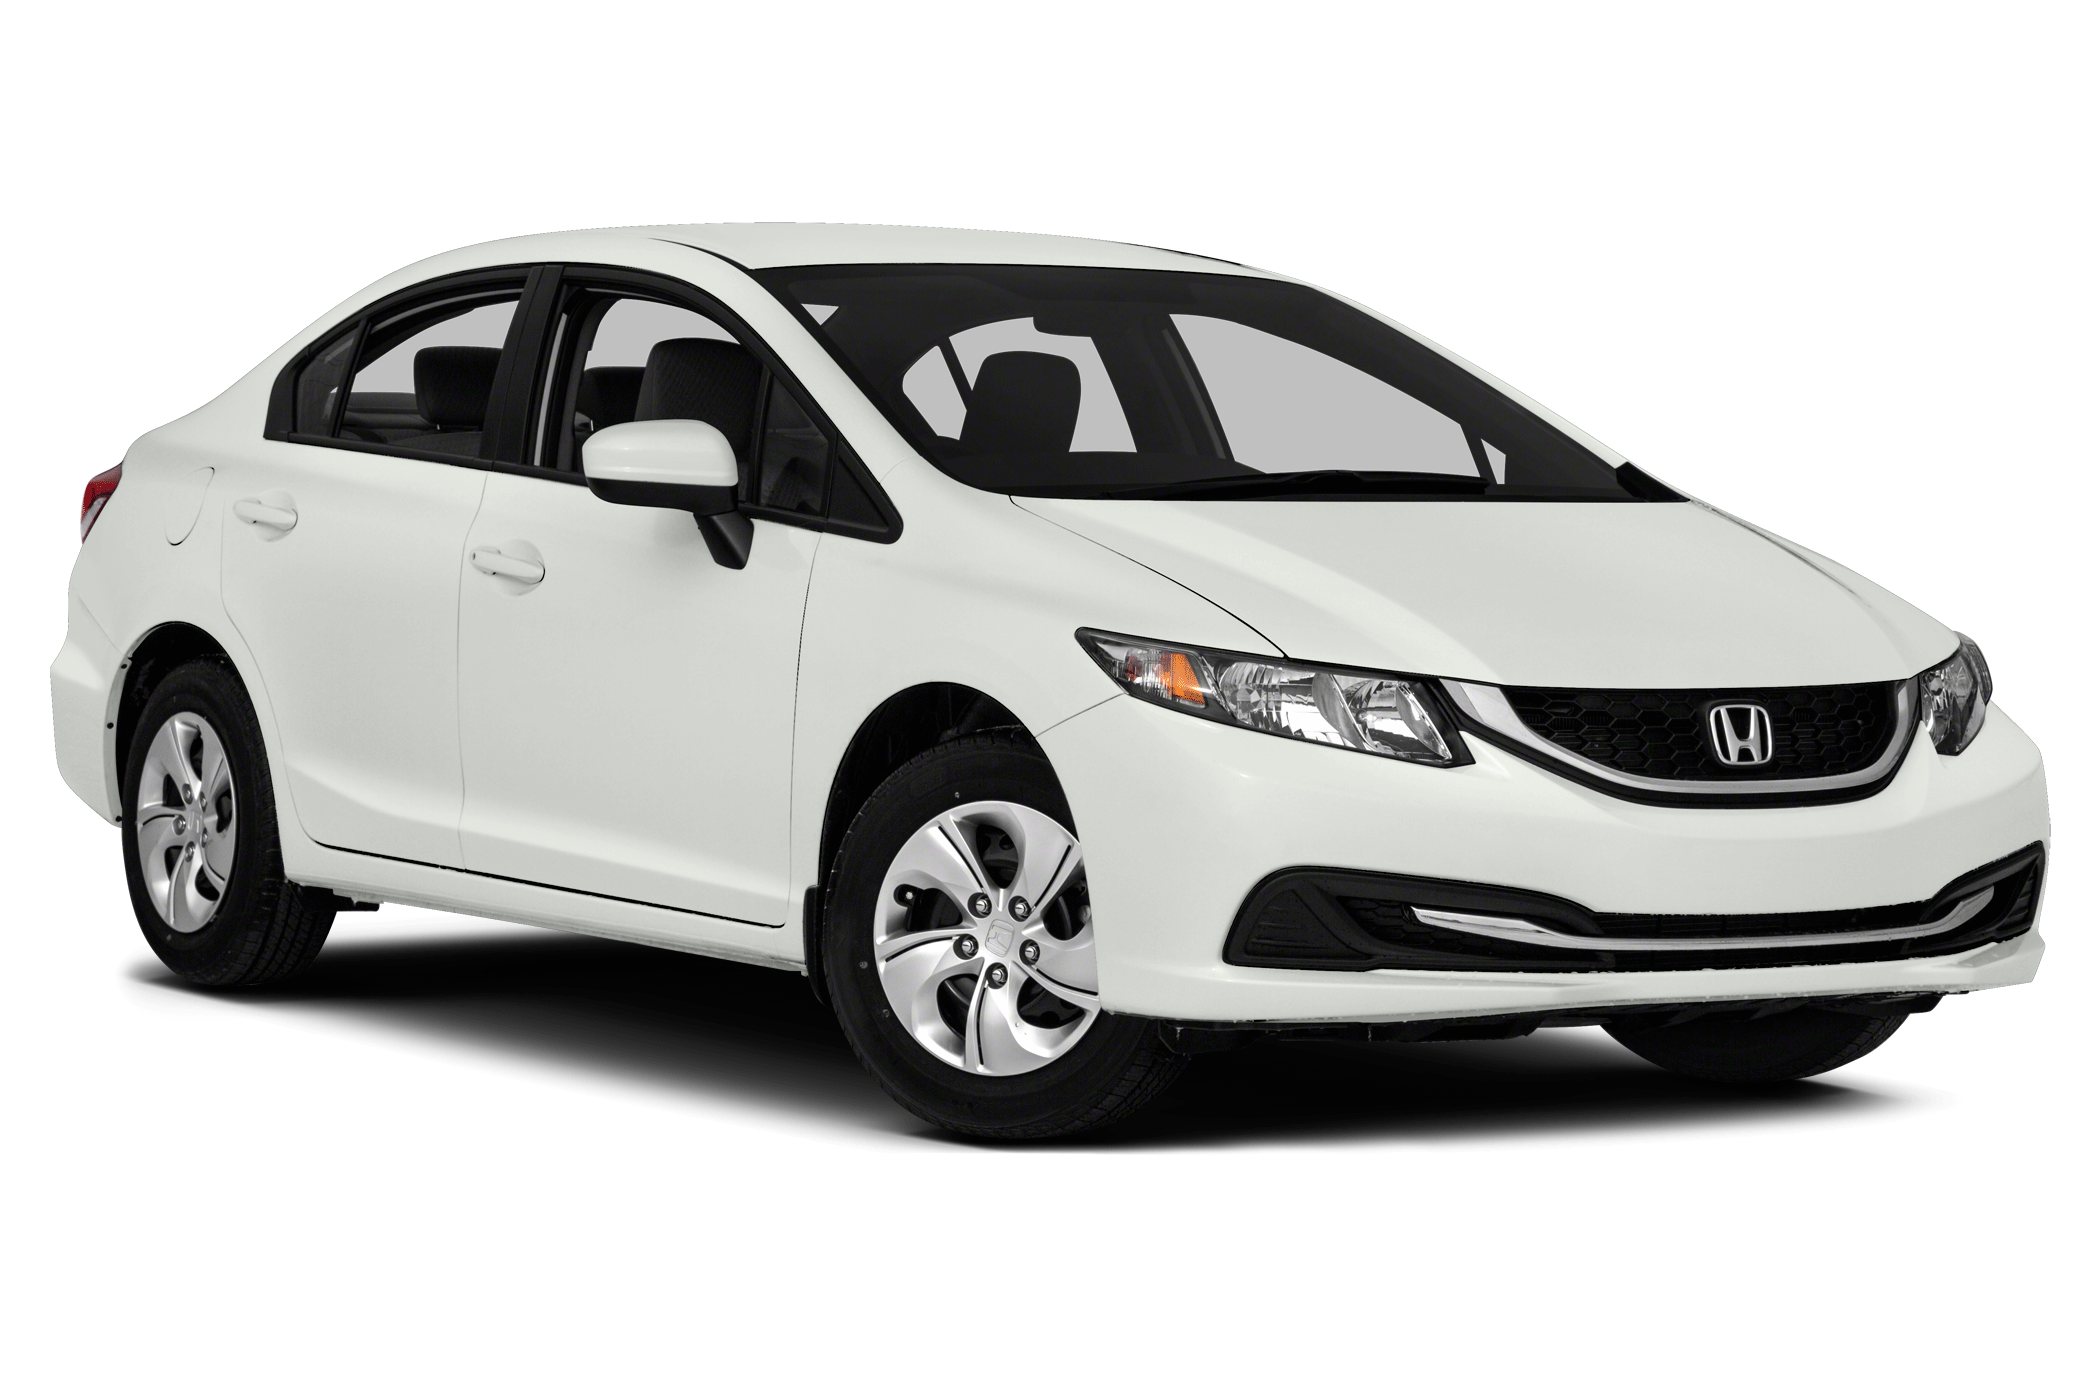 Download Honda Cars PNG Image for Free.